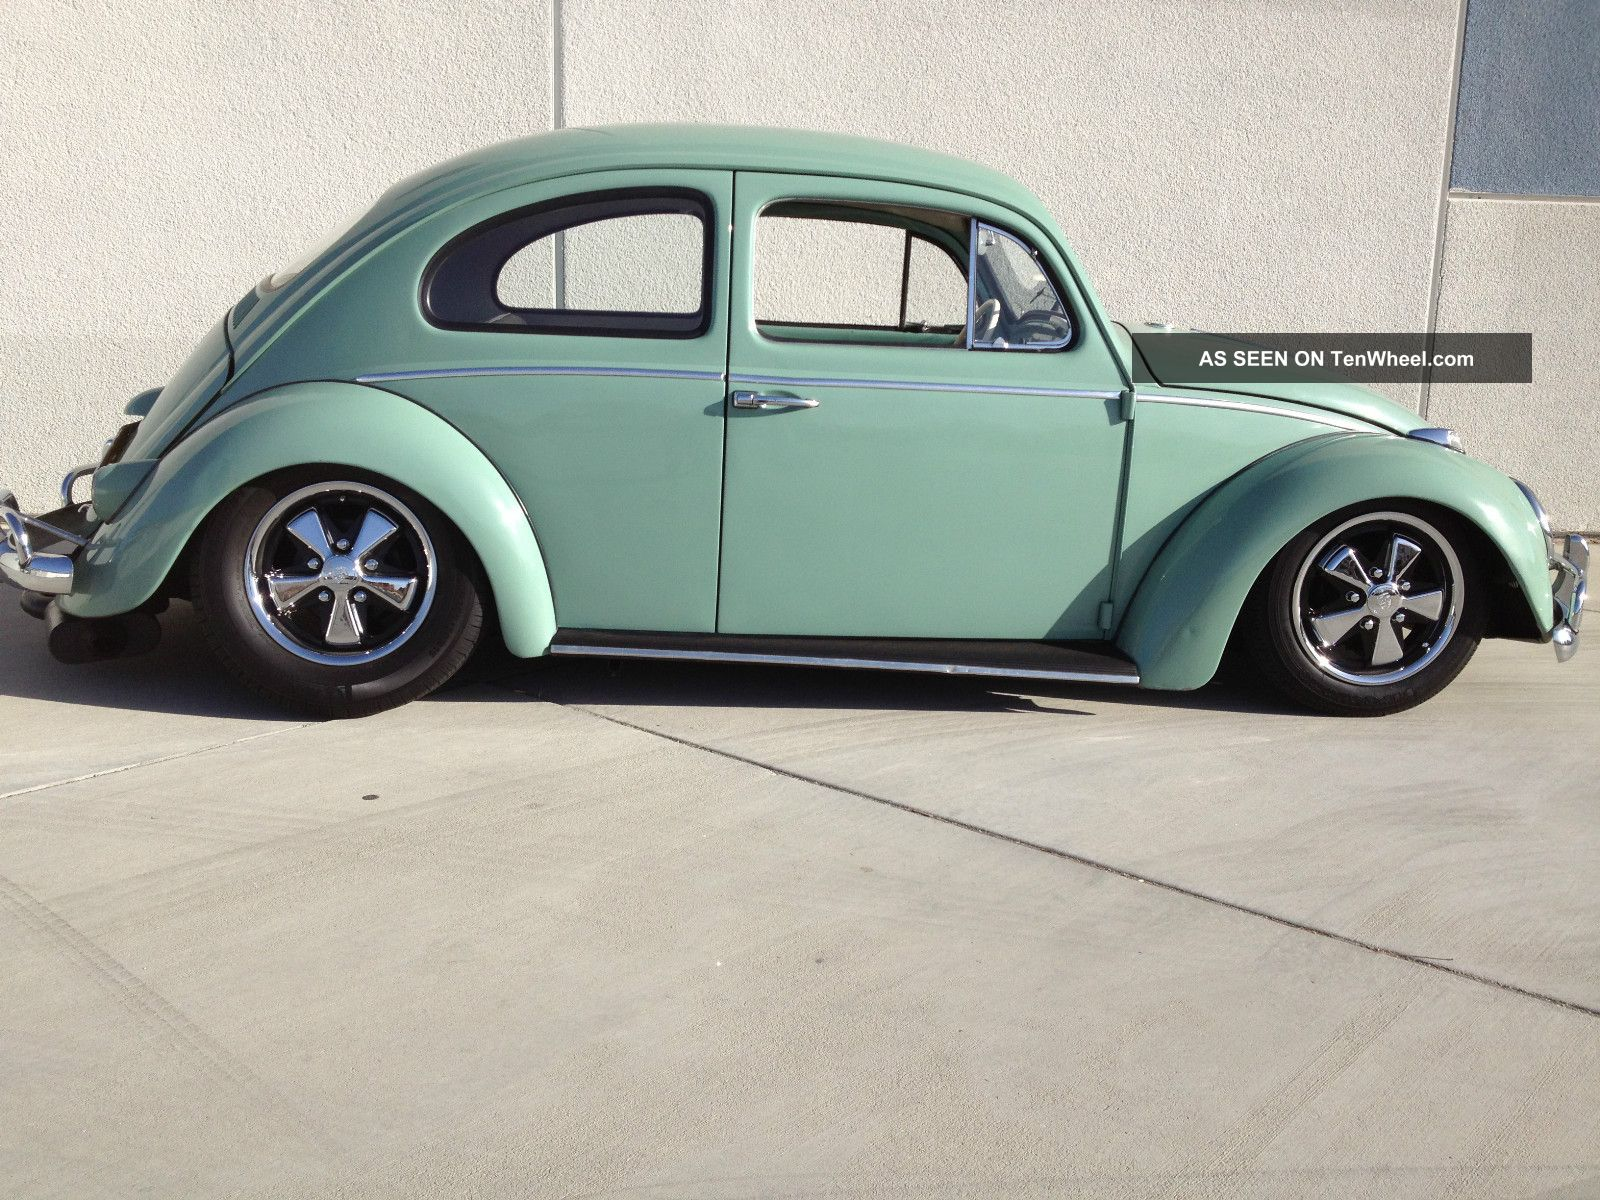 1971 Volkswagen Beetle Pictures C6919 pi9396371 likewise 146990 Awesome Baja Bug Big Motor New Interior Newer Rims And Tires Sharp Paint Fast additionally Bamboomwagens as well 1967 Vw Beetle 1300 Deluxe Via Stancenation as well Interiores Vocho. on 1967 vw beetle interior